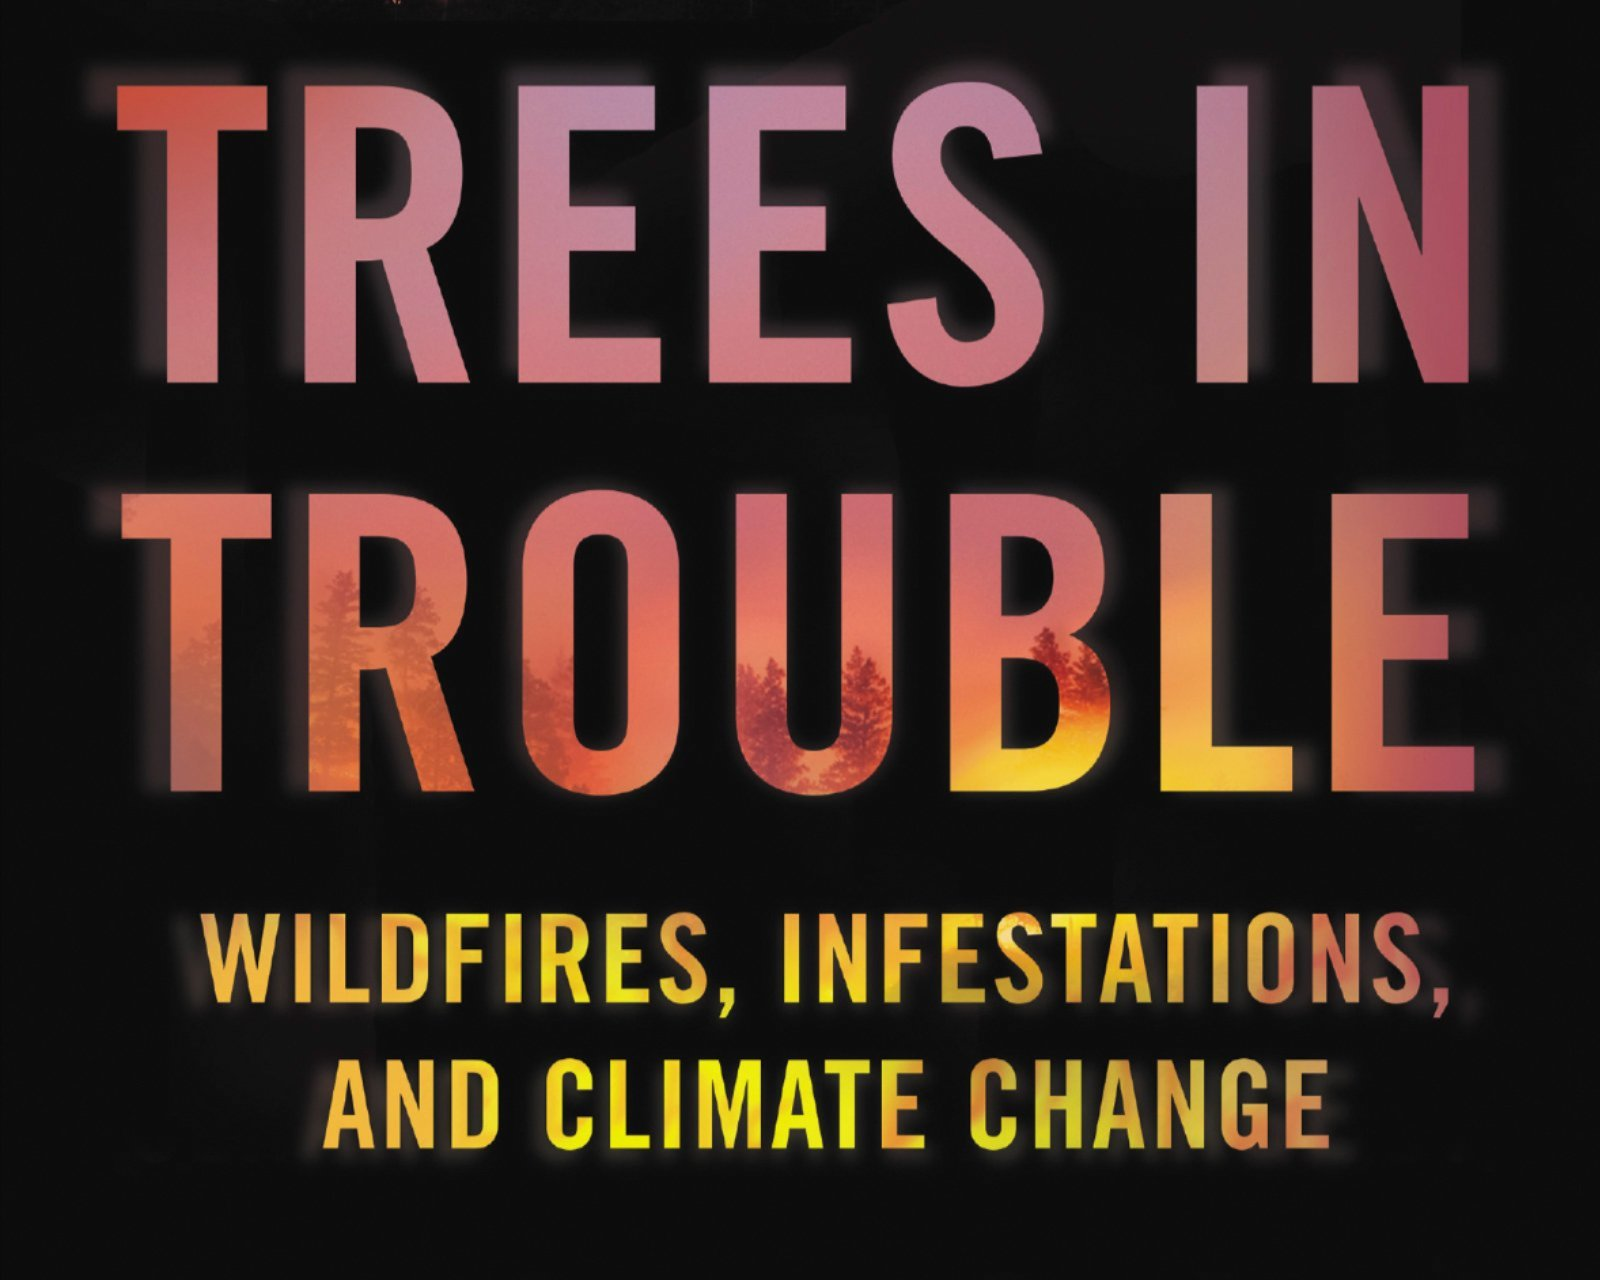 Trees in Trouble